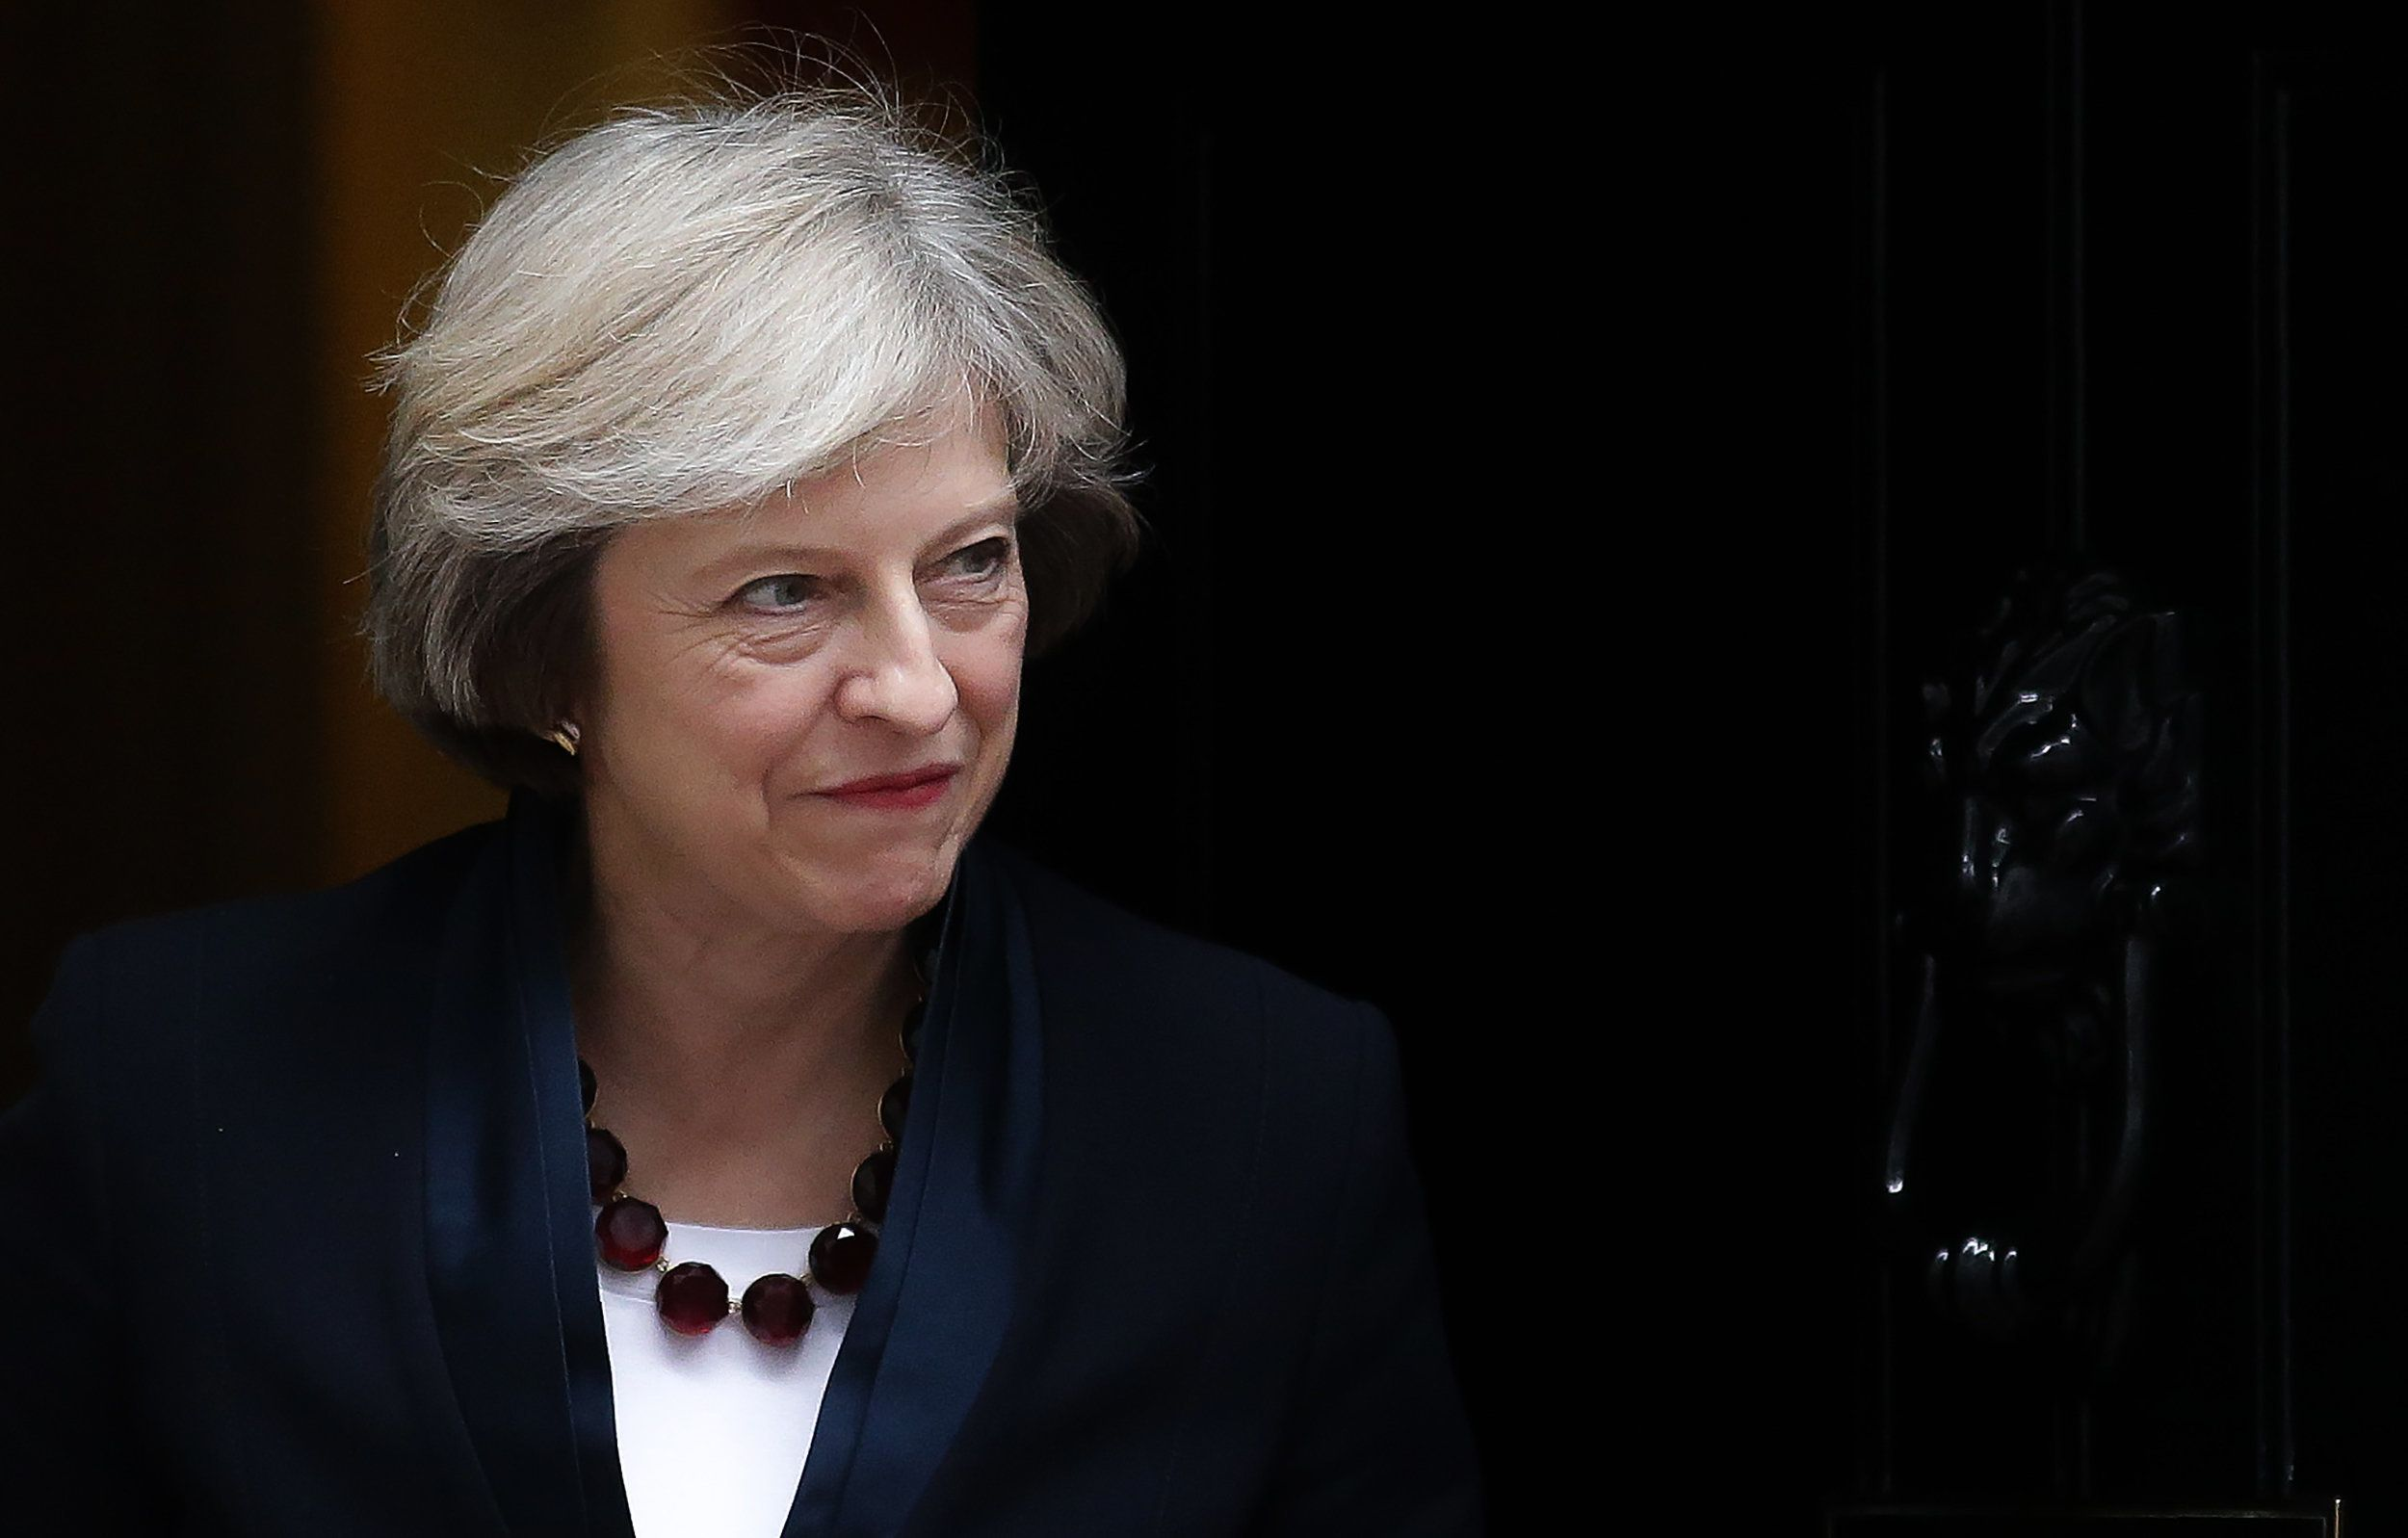 The government wasdefeated on an amendment to the Investigatory Powers